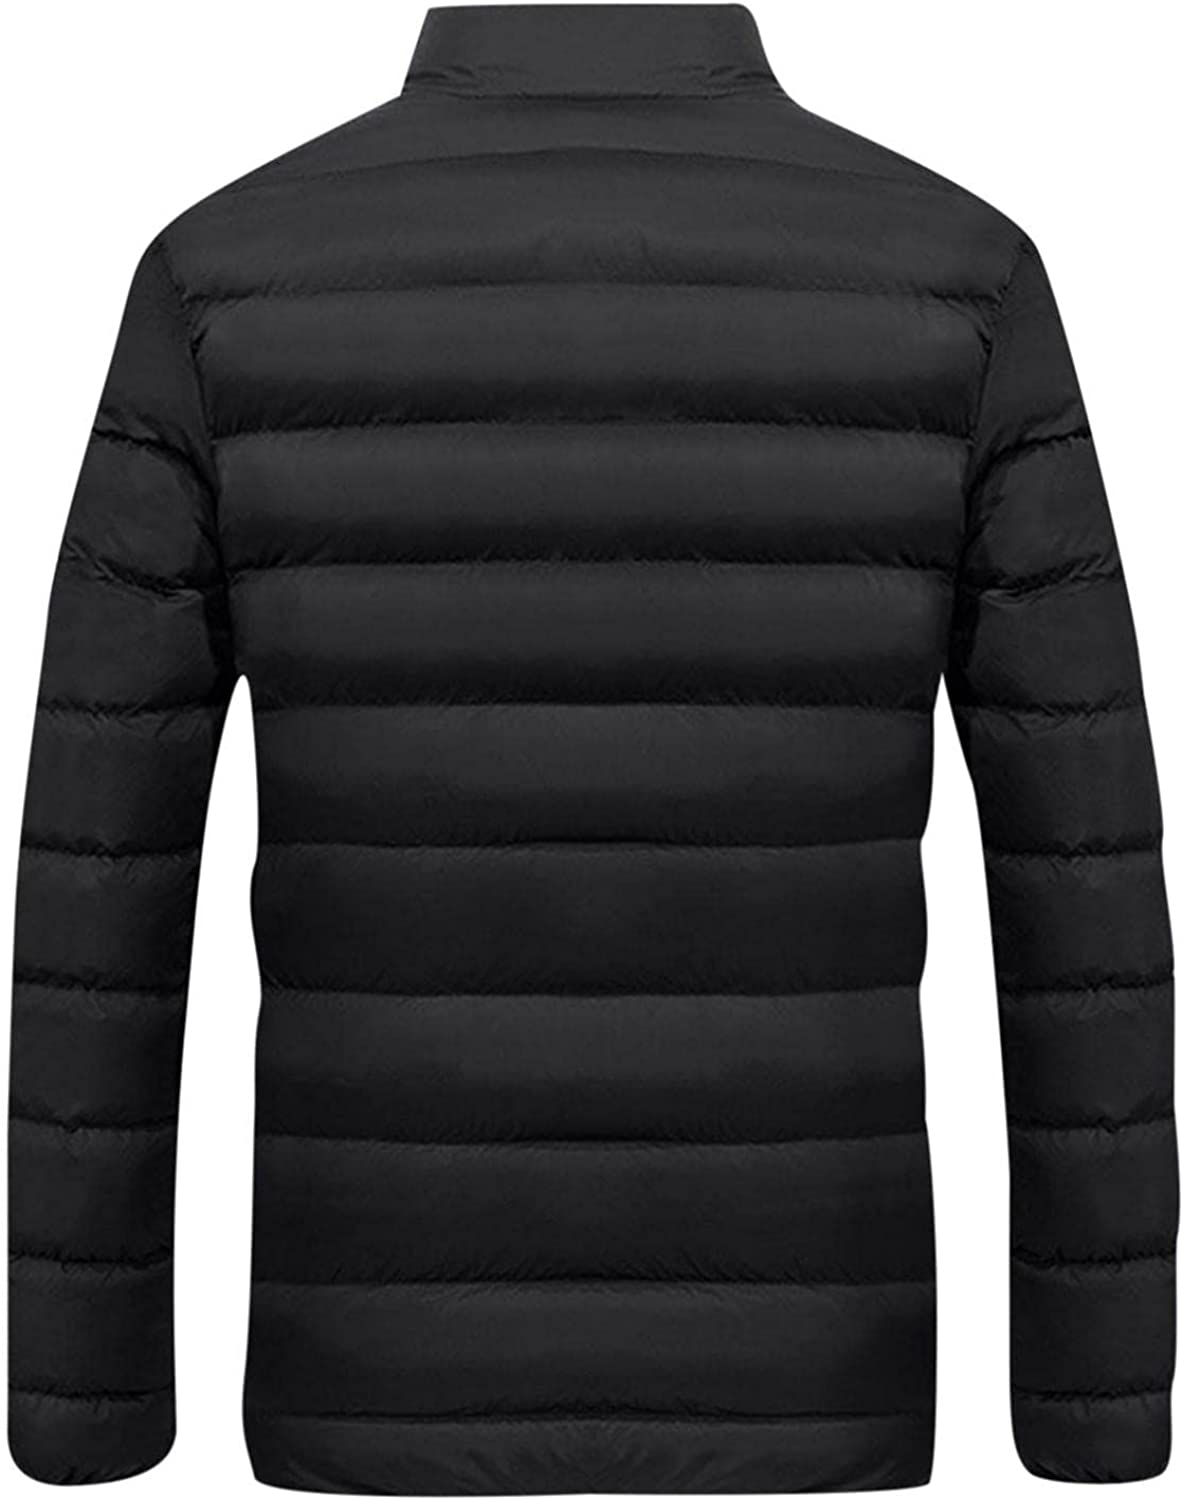 PHSHY Men's Lightweight Hooded Puffer Jackets Casual Slim Fit Thick Thermal Parka Coats Stand Collar Packable Overcoat